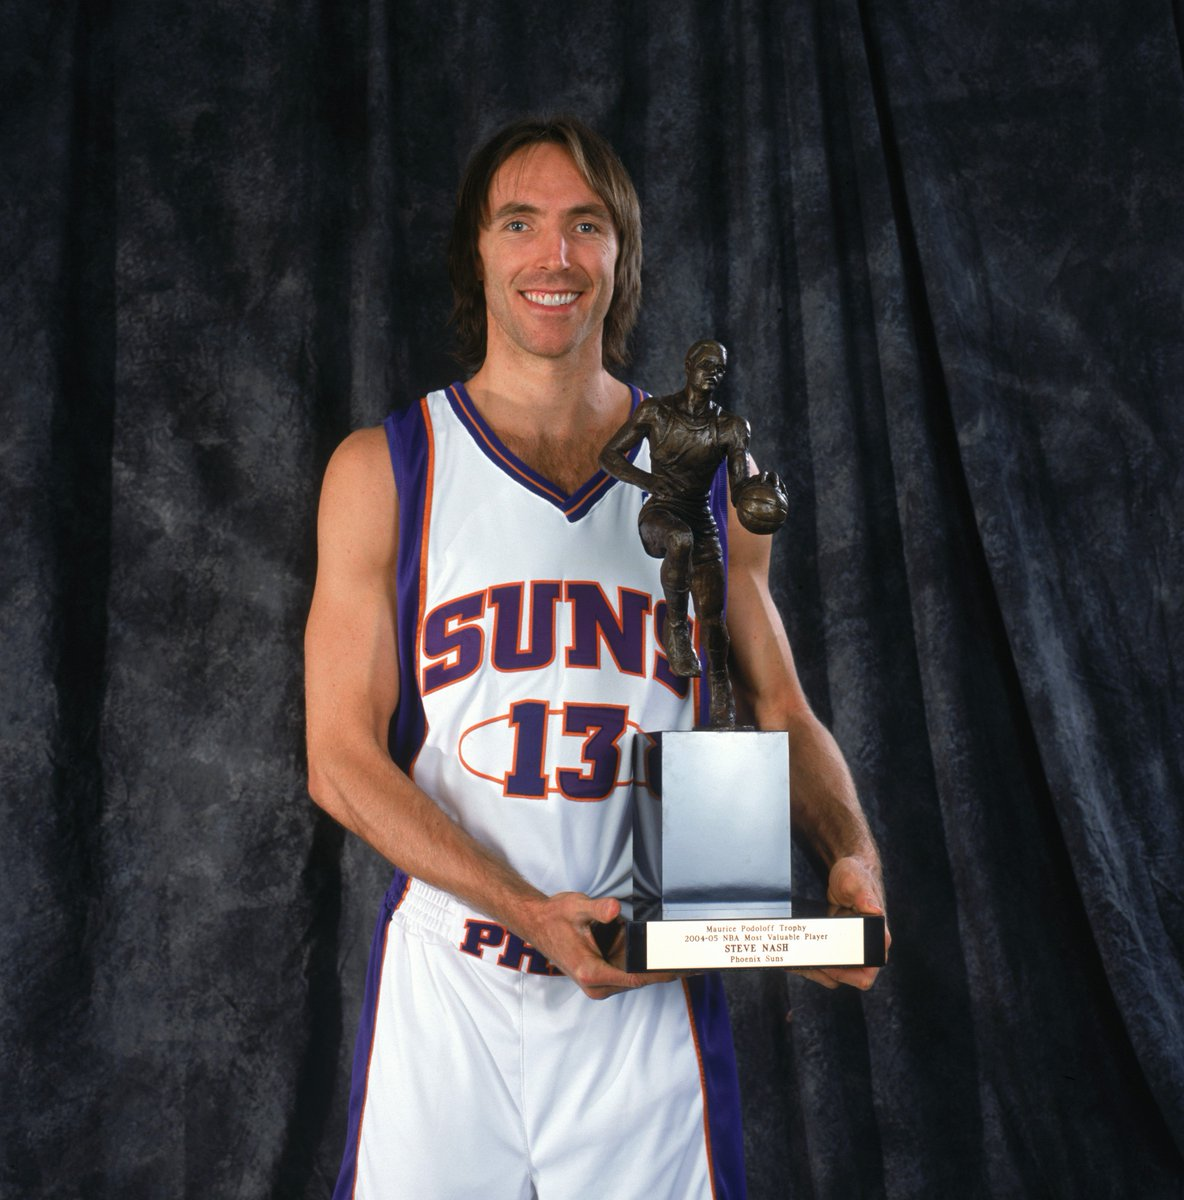 Congrats to @SteveNash, named one of the @Hoophall finalists for the Class of 2018; a two-time @NBA MVP winner (2005, 2006), Nash was the catalyst for the celebrated/uptempo @Suns teams (7 seconds or less) that infused the game. @Hoophall inductees will be announced on March 31. https://t.co/ERR9PesBo1